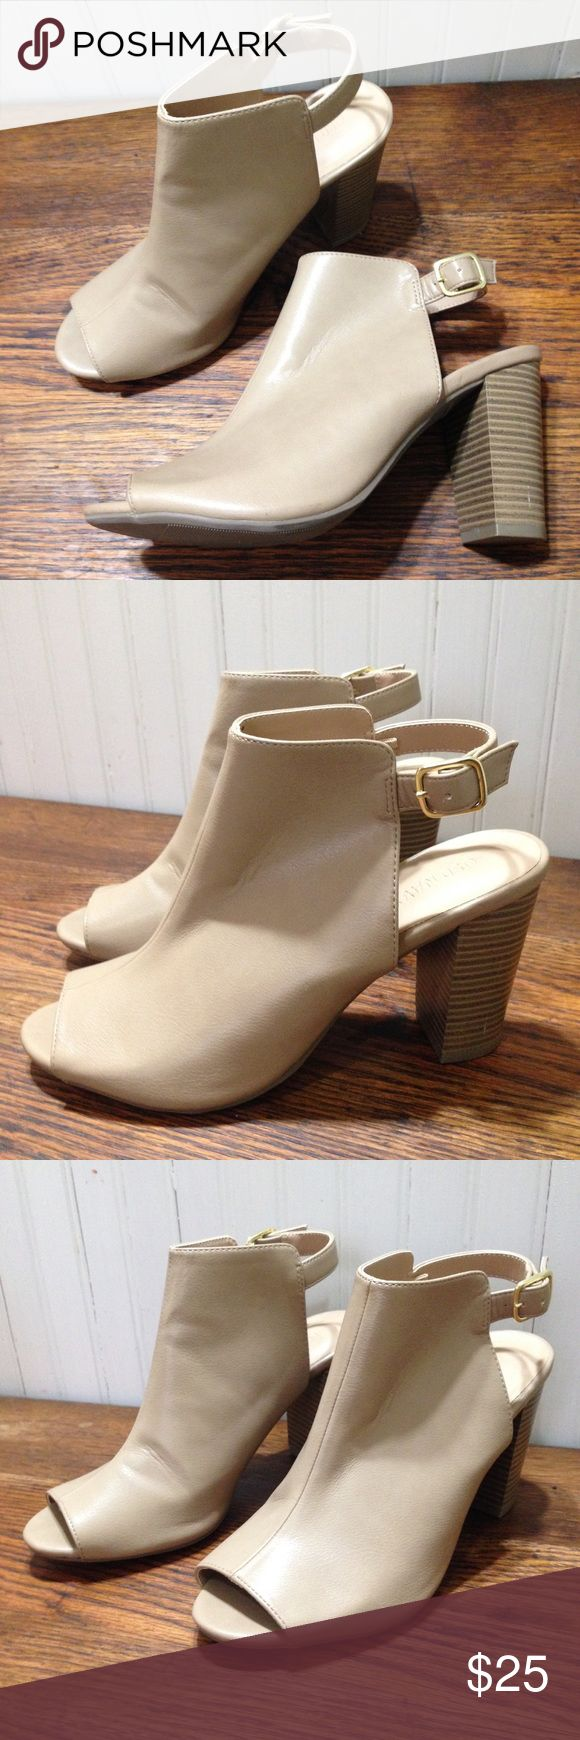 "Old Navy peep toe booties tan /taupe size 7 Old Navy peep toe booties tan /taupe size 7 , fasten around the ankle, 3.5"" heels,man made materials, good condition Old Navy Shoes Ankle Boots & Booties"